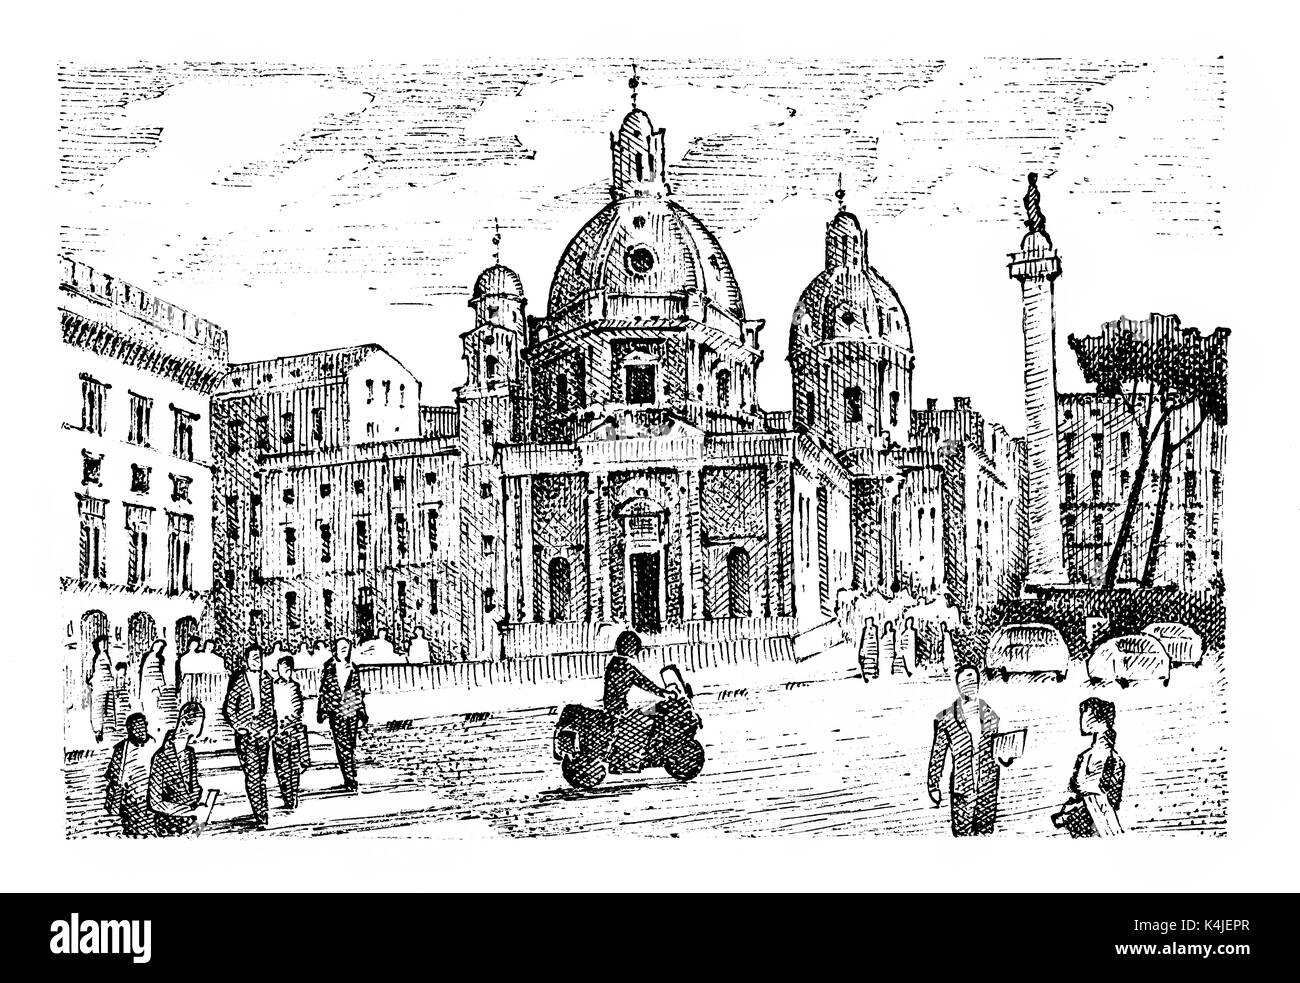 landscape in European town Rome in Italy . engraved hand drawn in old sketch and vintage style. historical architecture with buildings, perspective vi - Stock Image